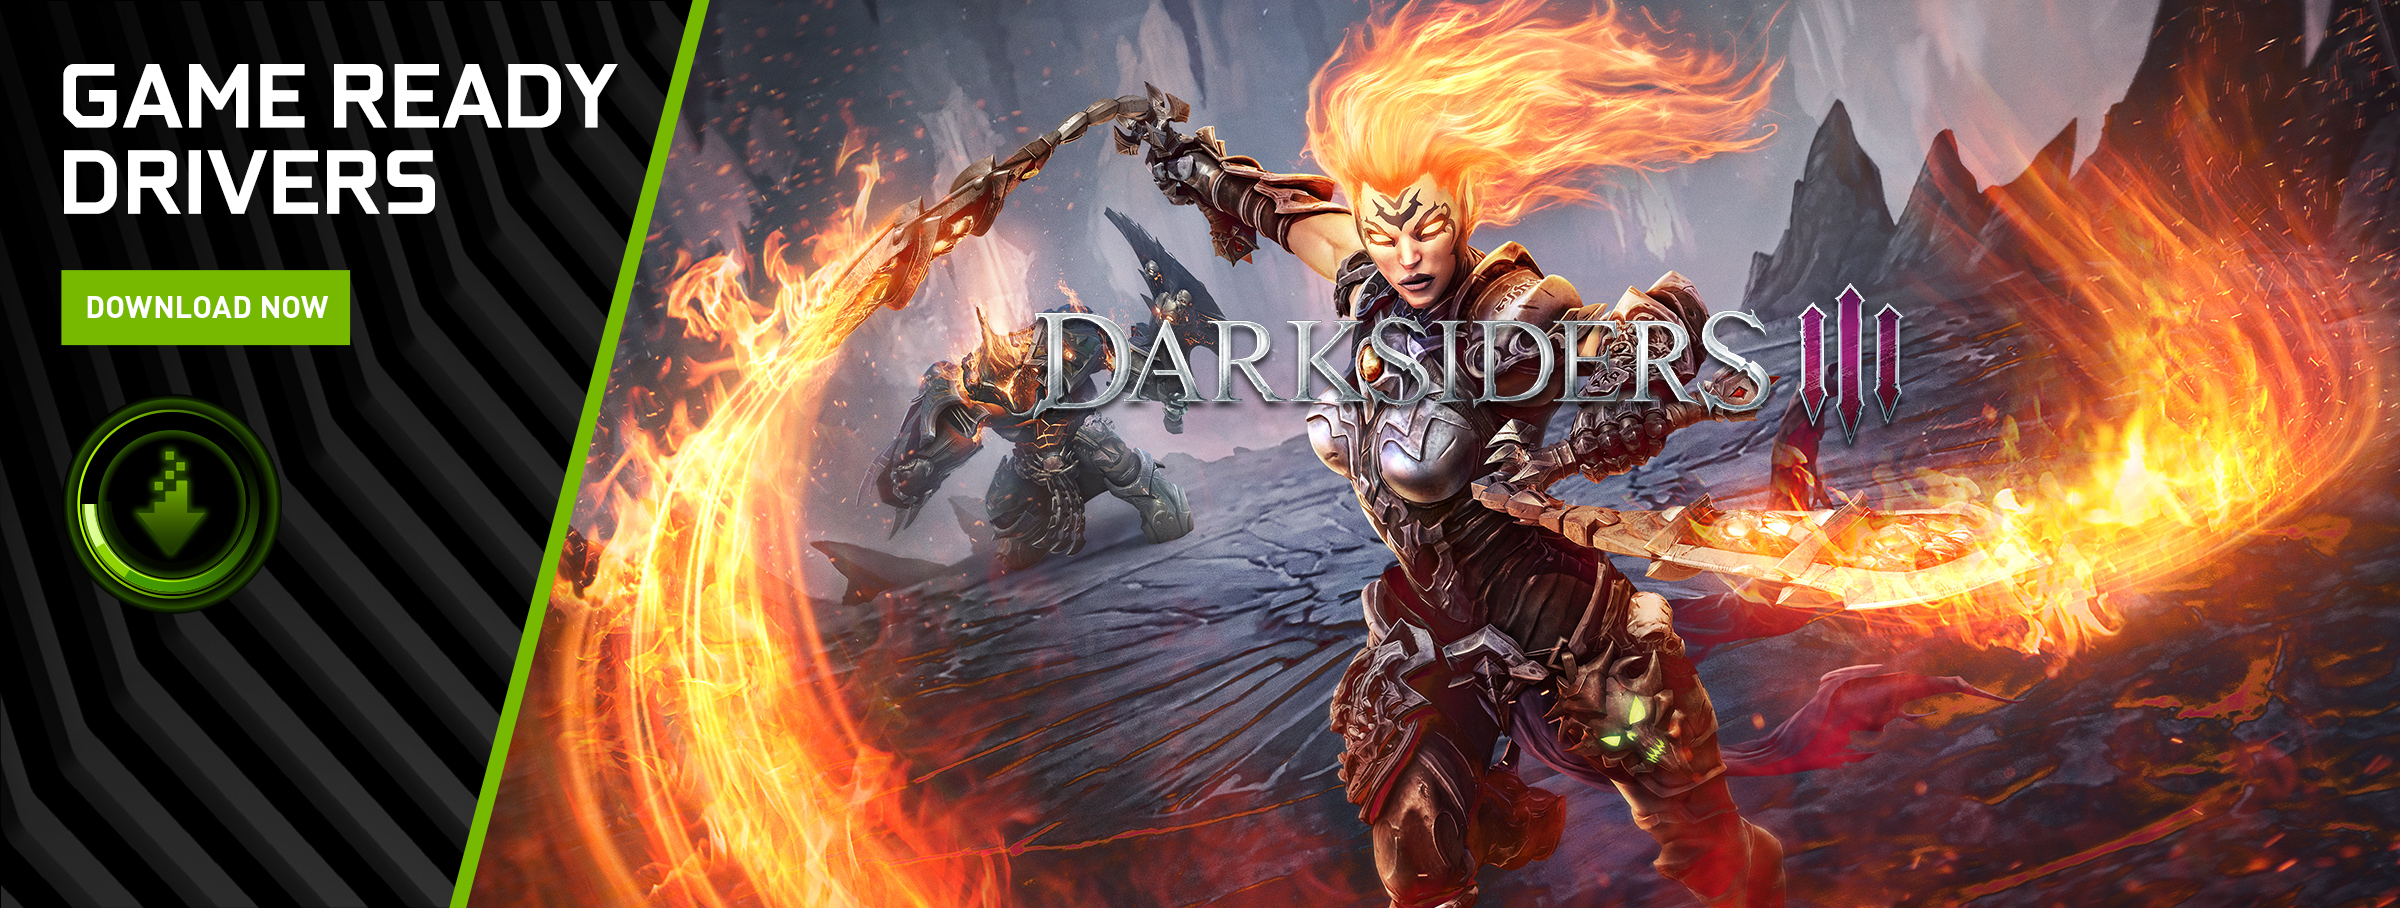 Darksiders III Game Ready Driver Released